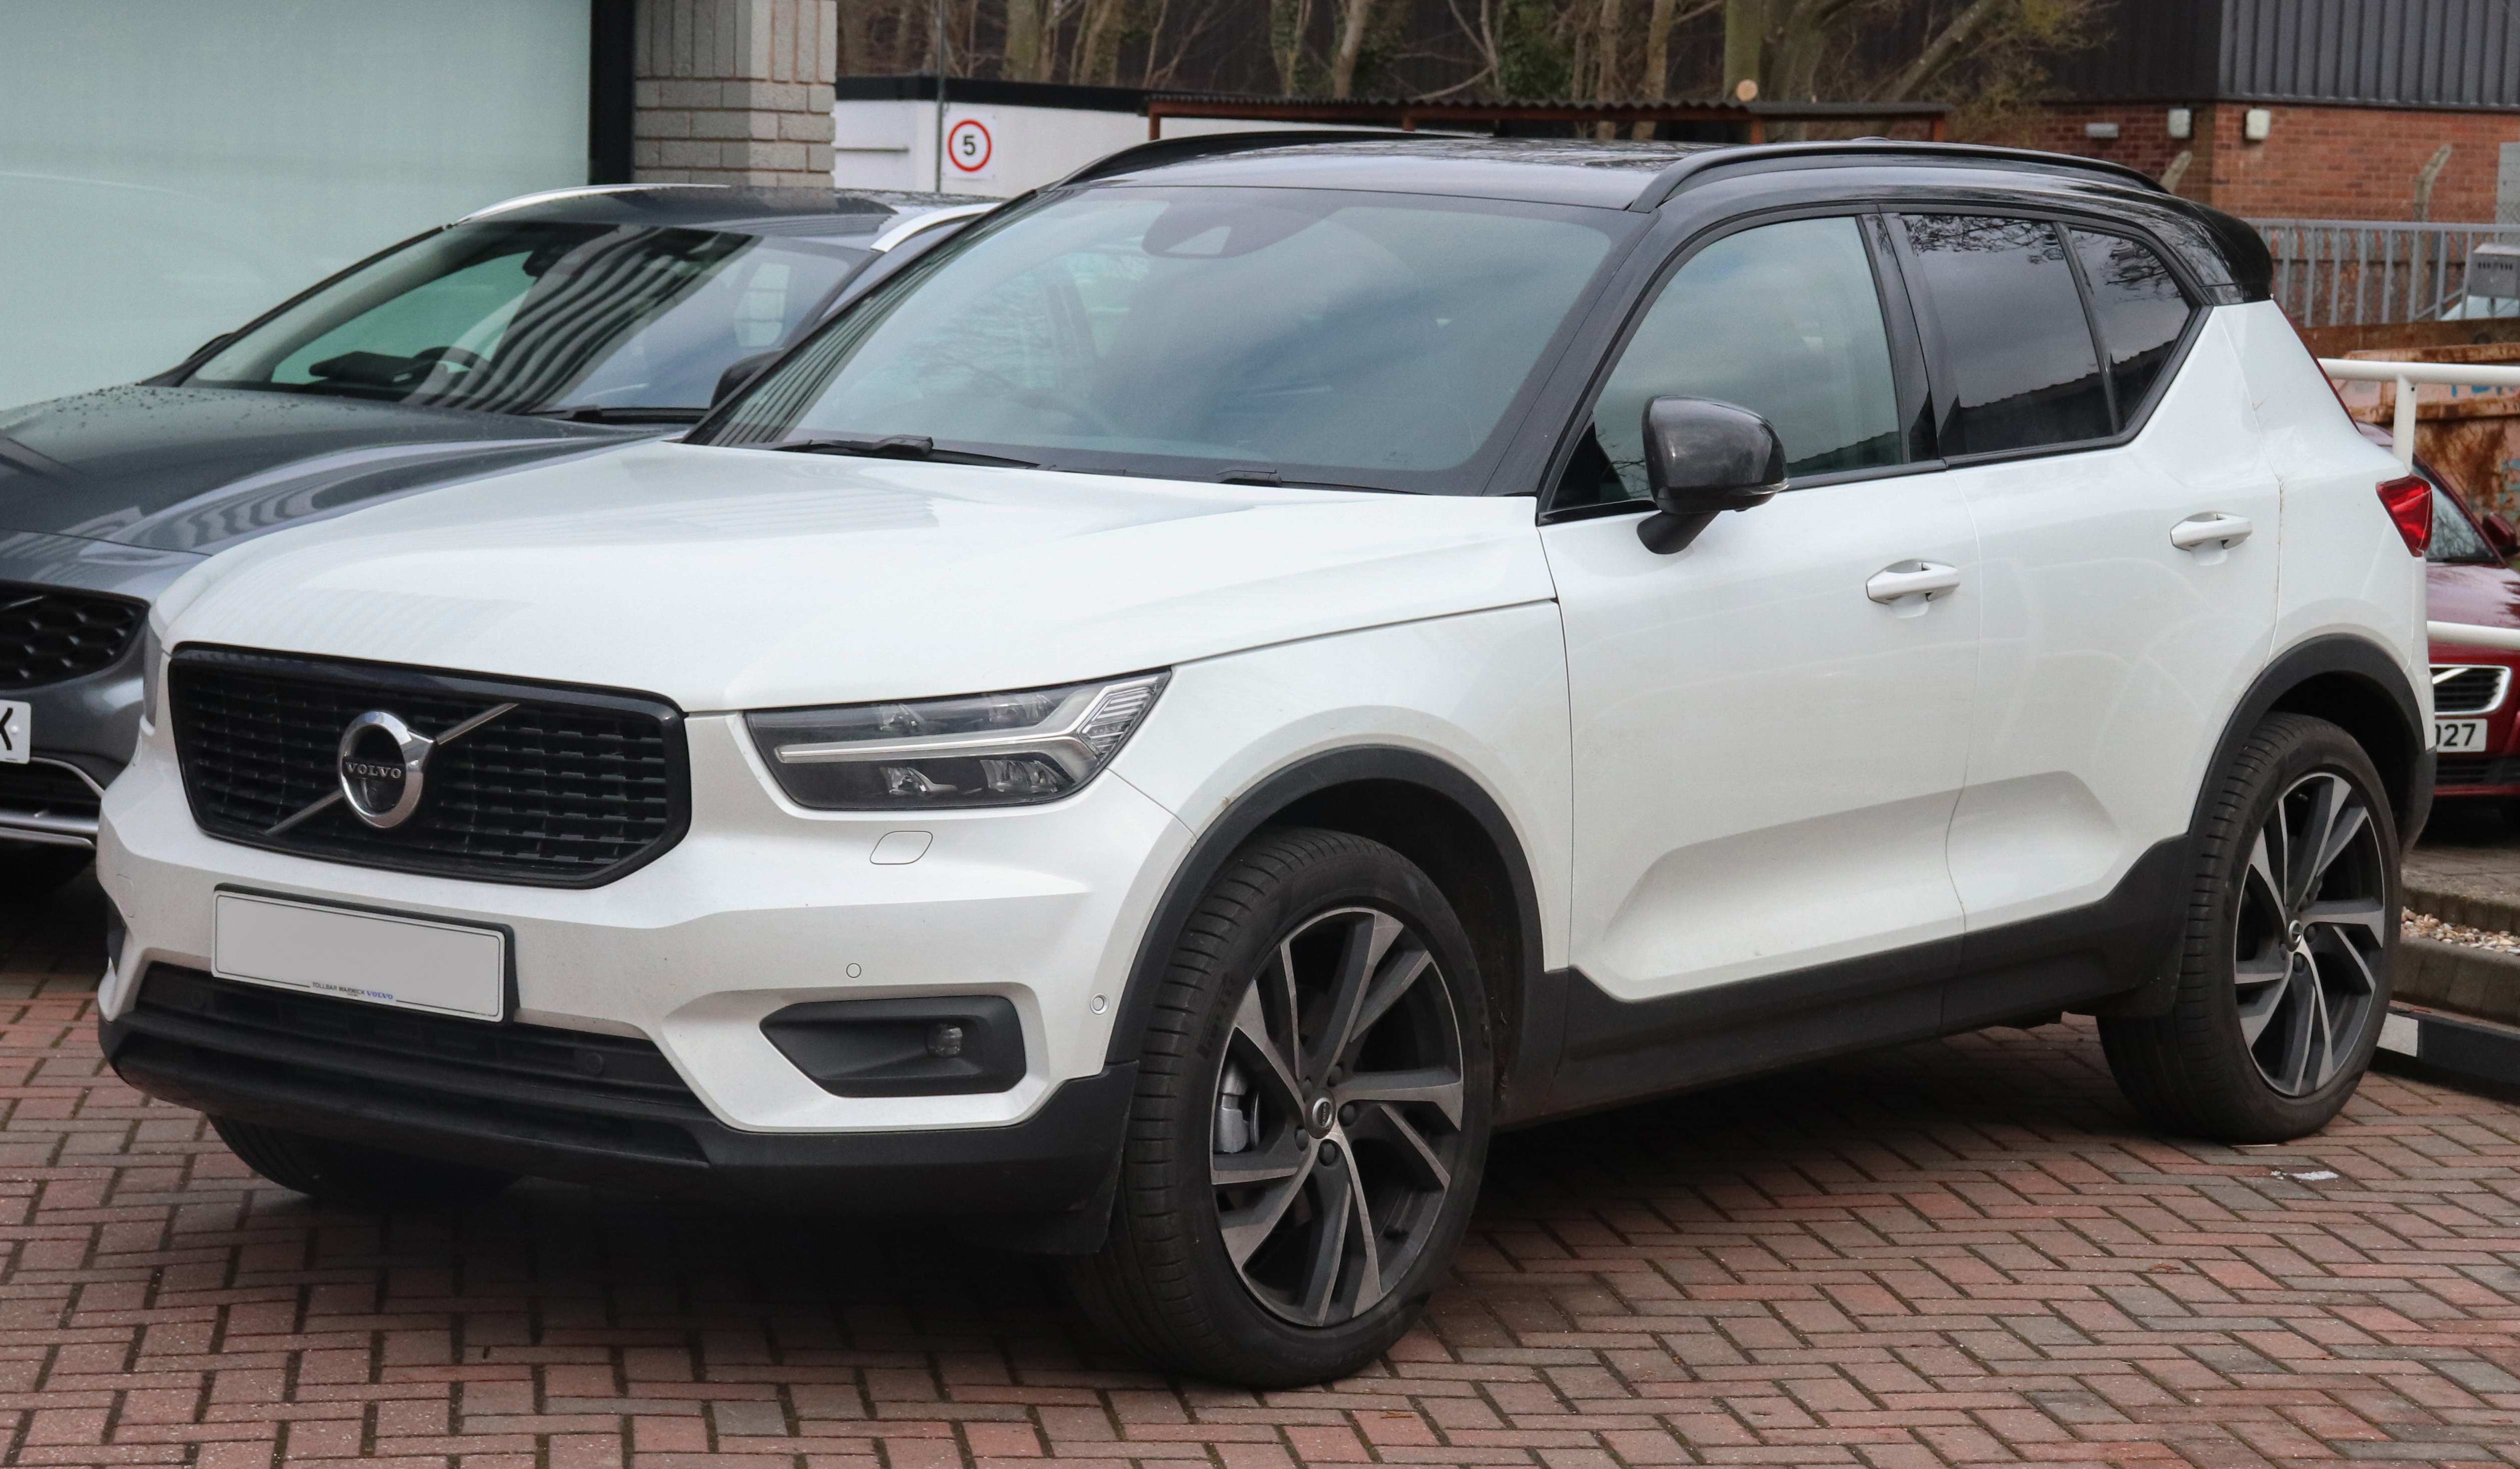 30 Concept of 2020 Volvo Xc40 Hybrid Release Date Spy Shoot for 2020 Volvo Xc40 Hybrid Release Date